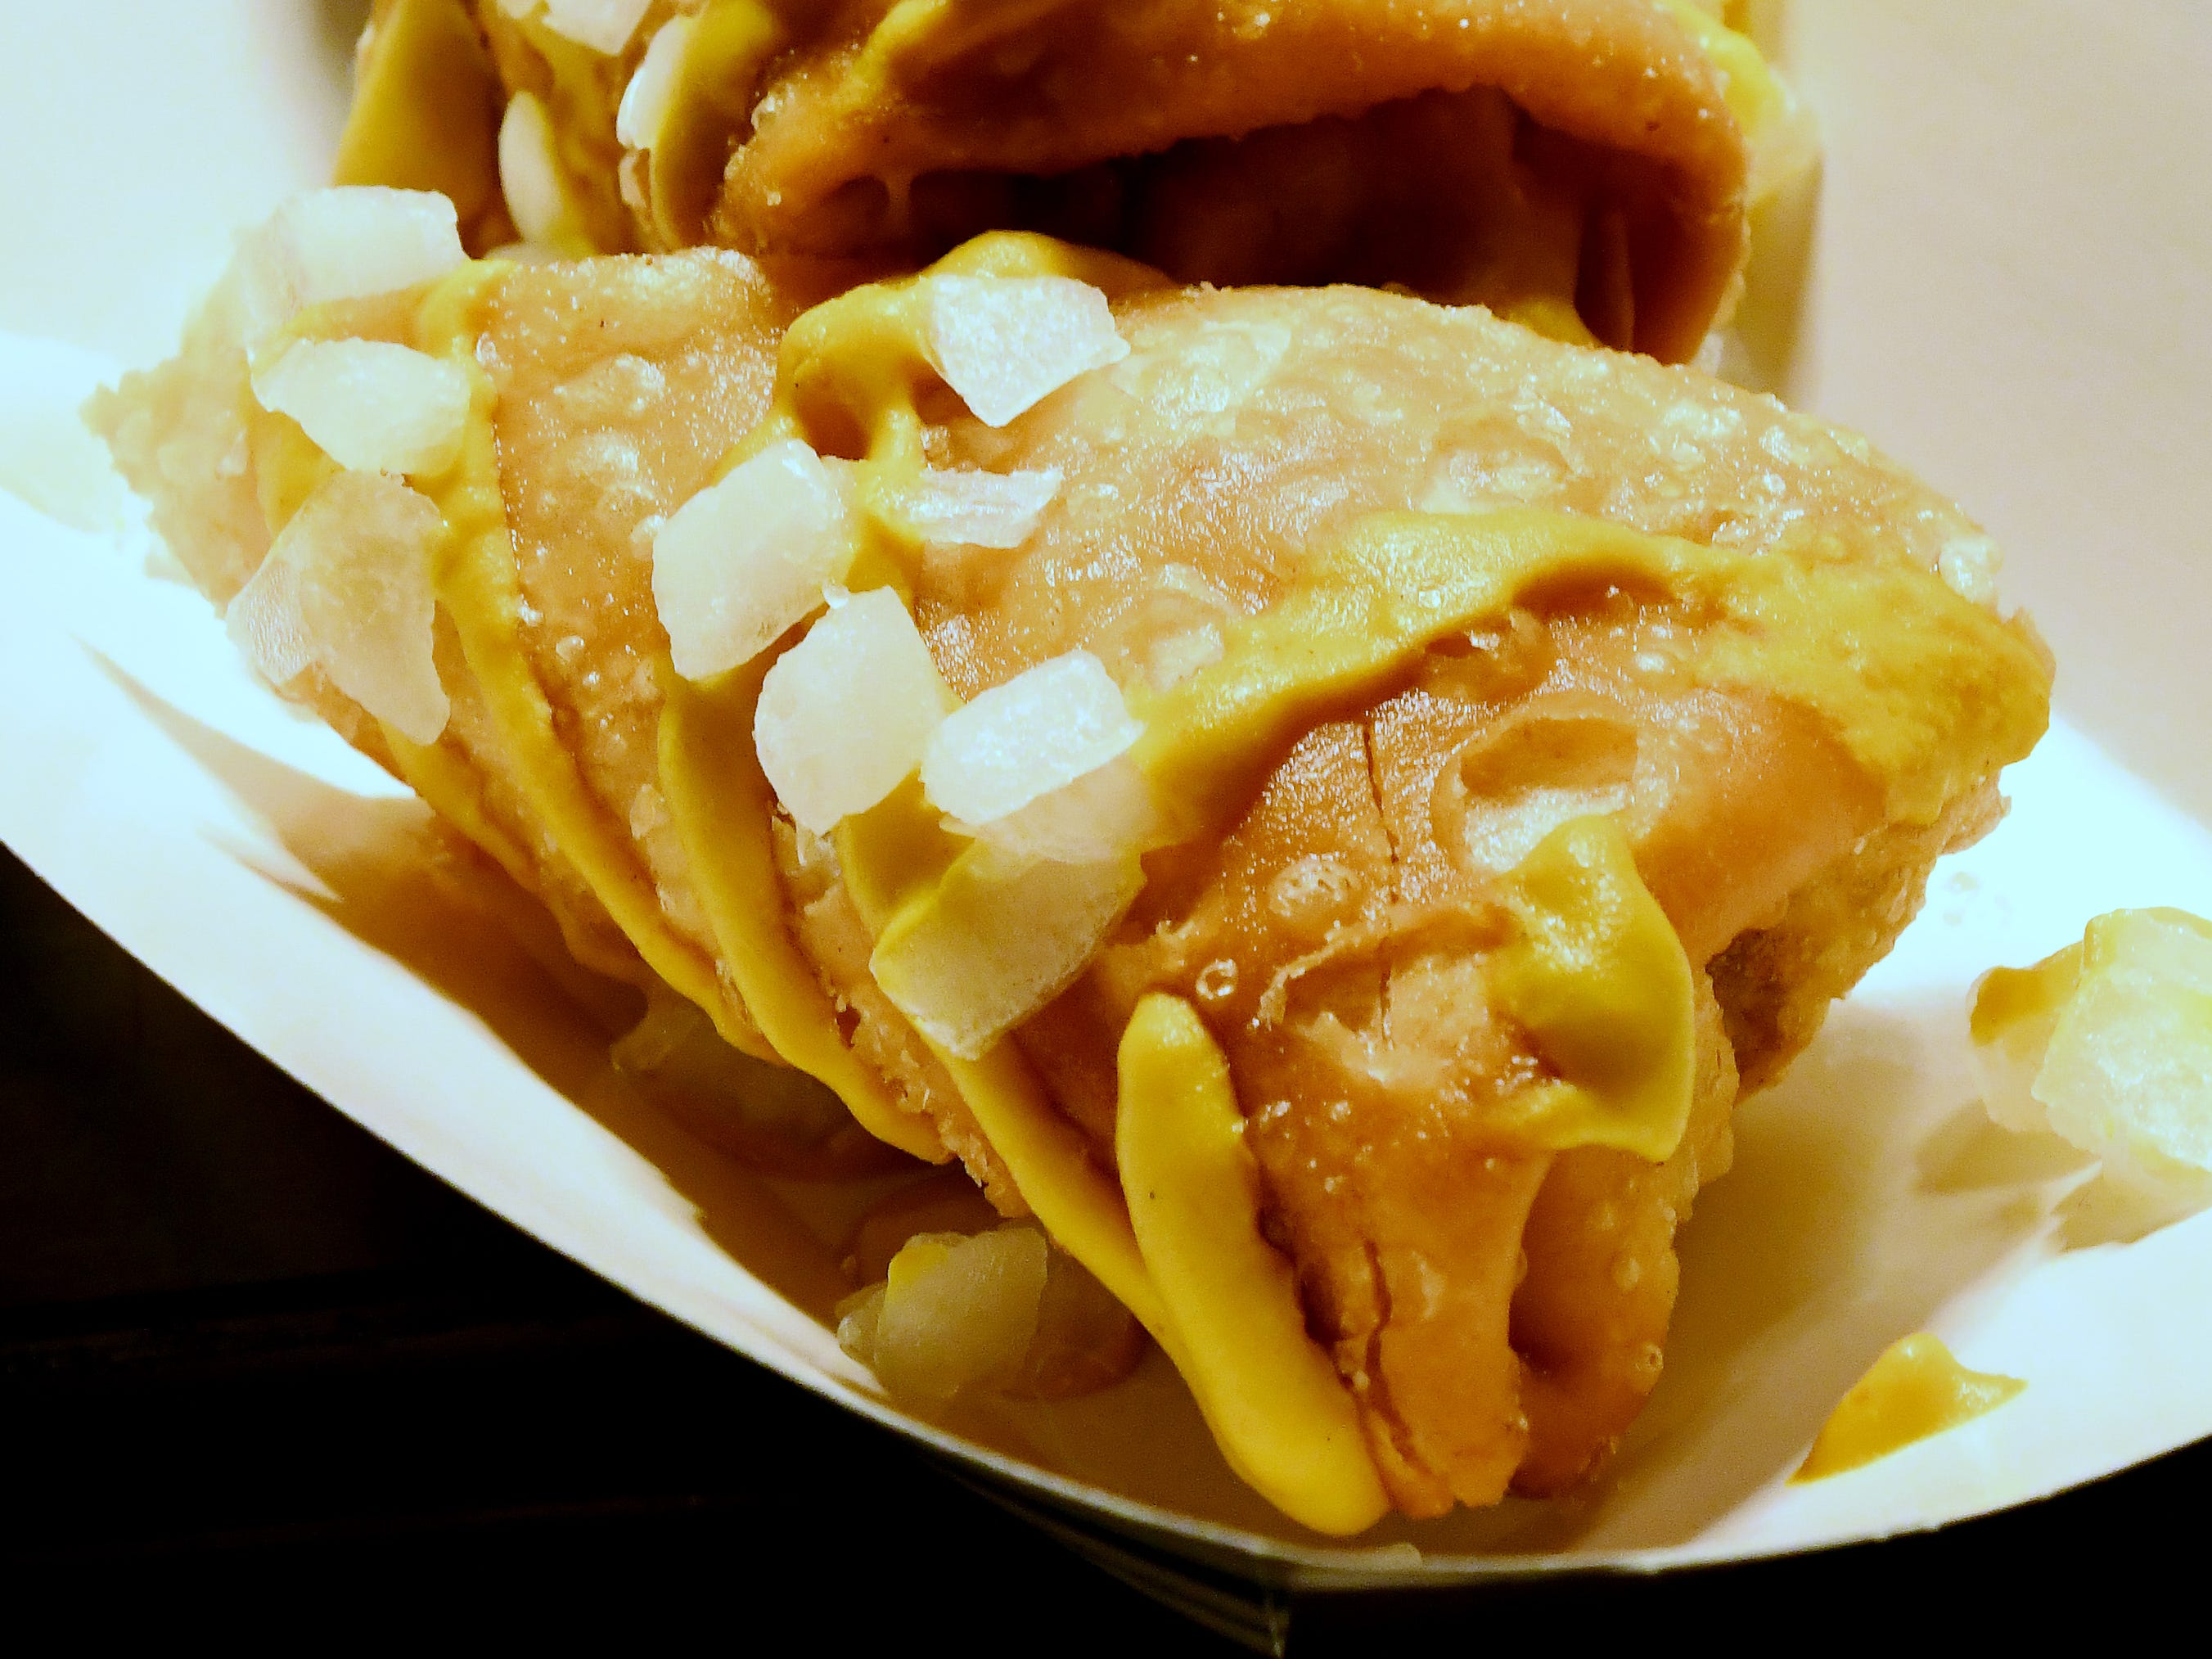 """""""Coney Dog Eggroll"""" which is a crispy egg roll filled with hot dog and chili, drizzled with classic mustard and sprinkle of diced onions."""